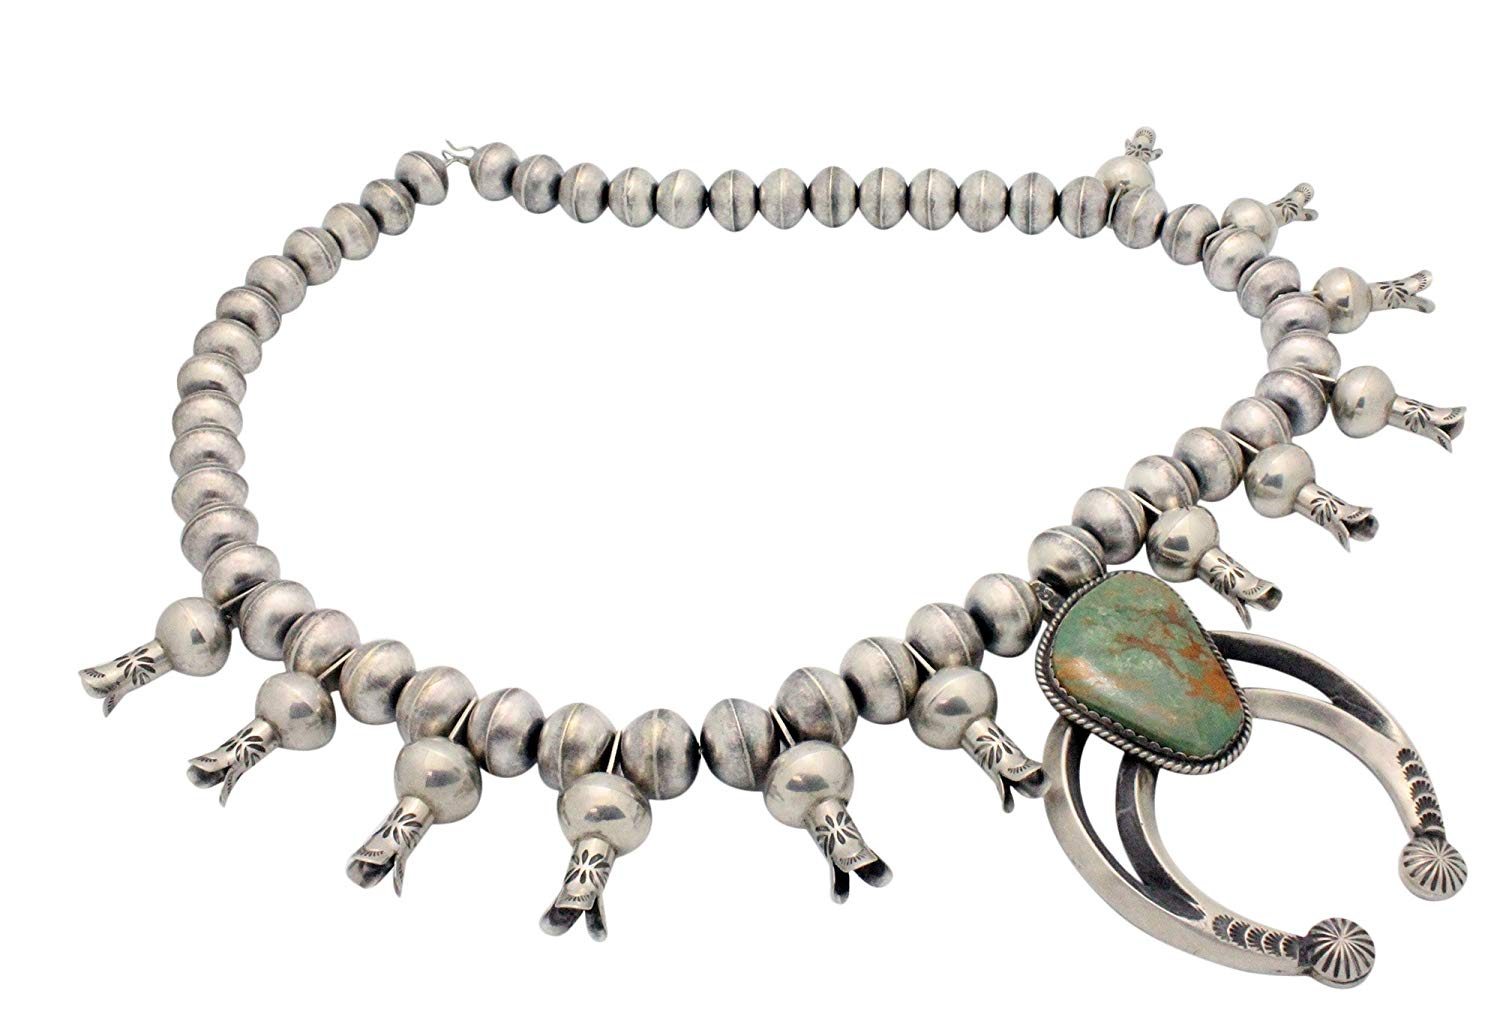 Daughter of the Water Chunky Metalwork Cabochon Squash Blossom Turquoise Stone Cuff Bracelet